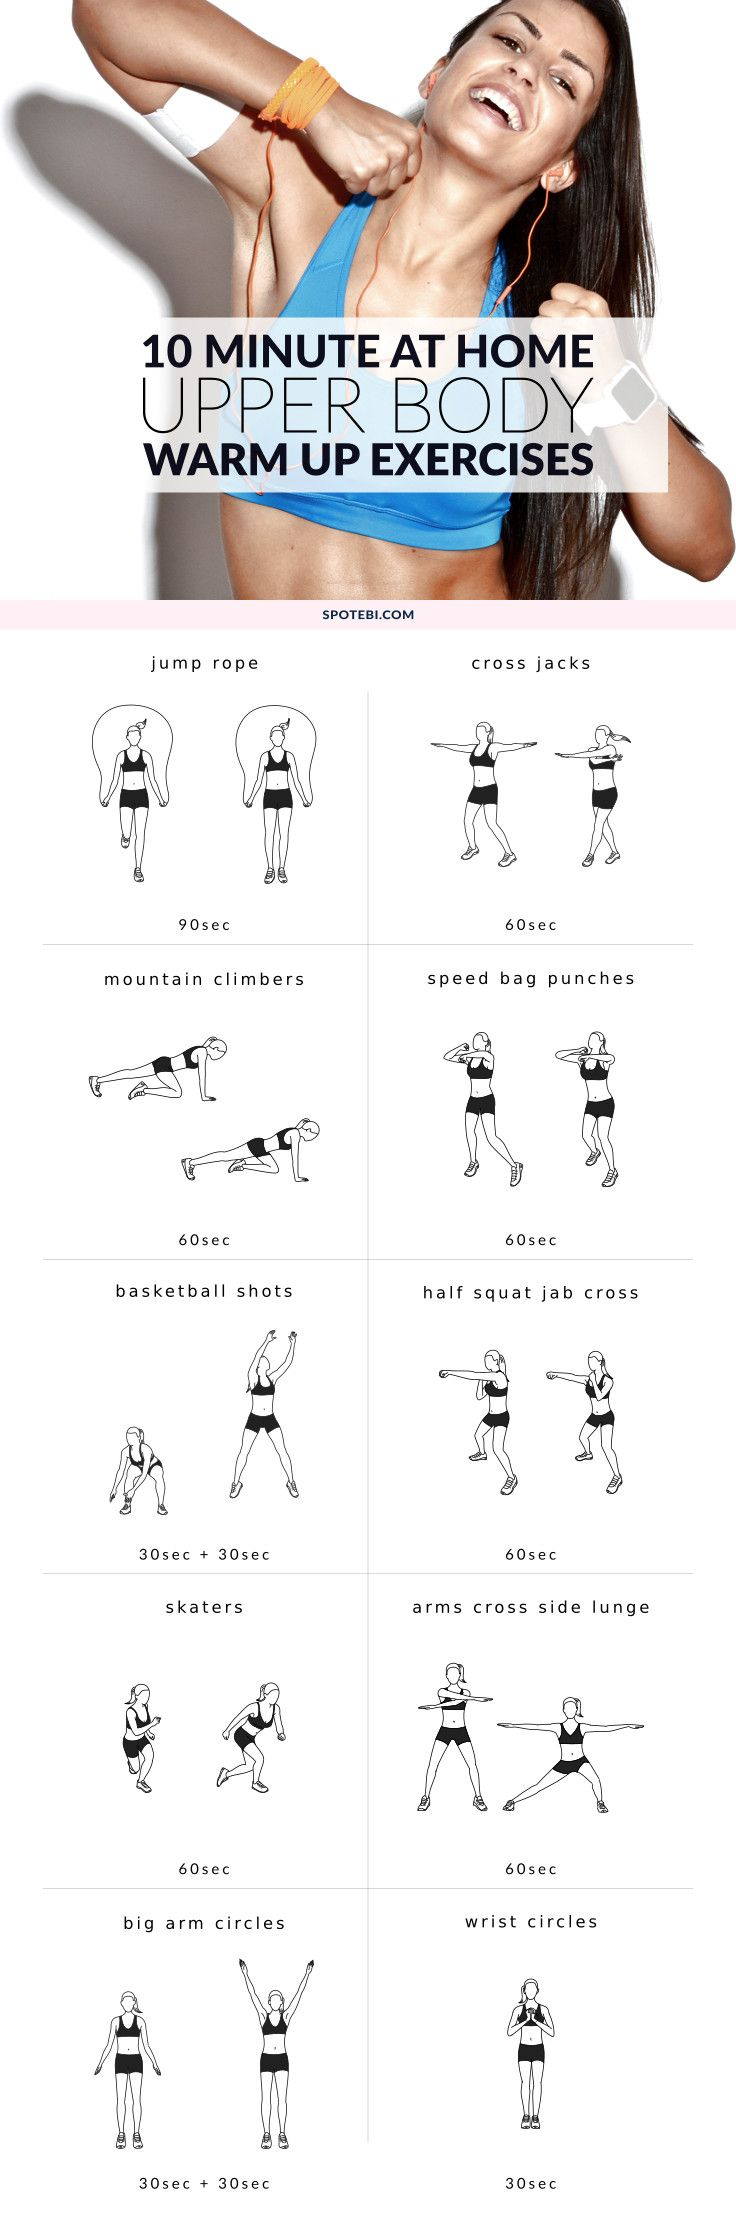 Need a quick warm up to jump start your workout routine? Try this set of upper body warm up exercises to boost your metabolism, improve your flexibility and prevent injuries. http://www.spotebi.com/workout-routines/upper-body-warm-up-exercises-women/